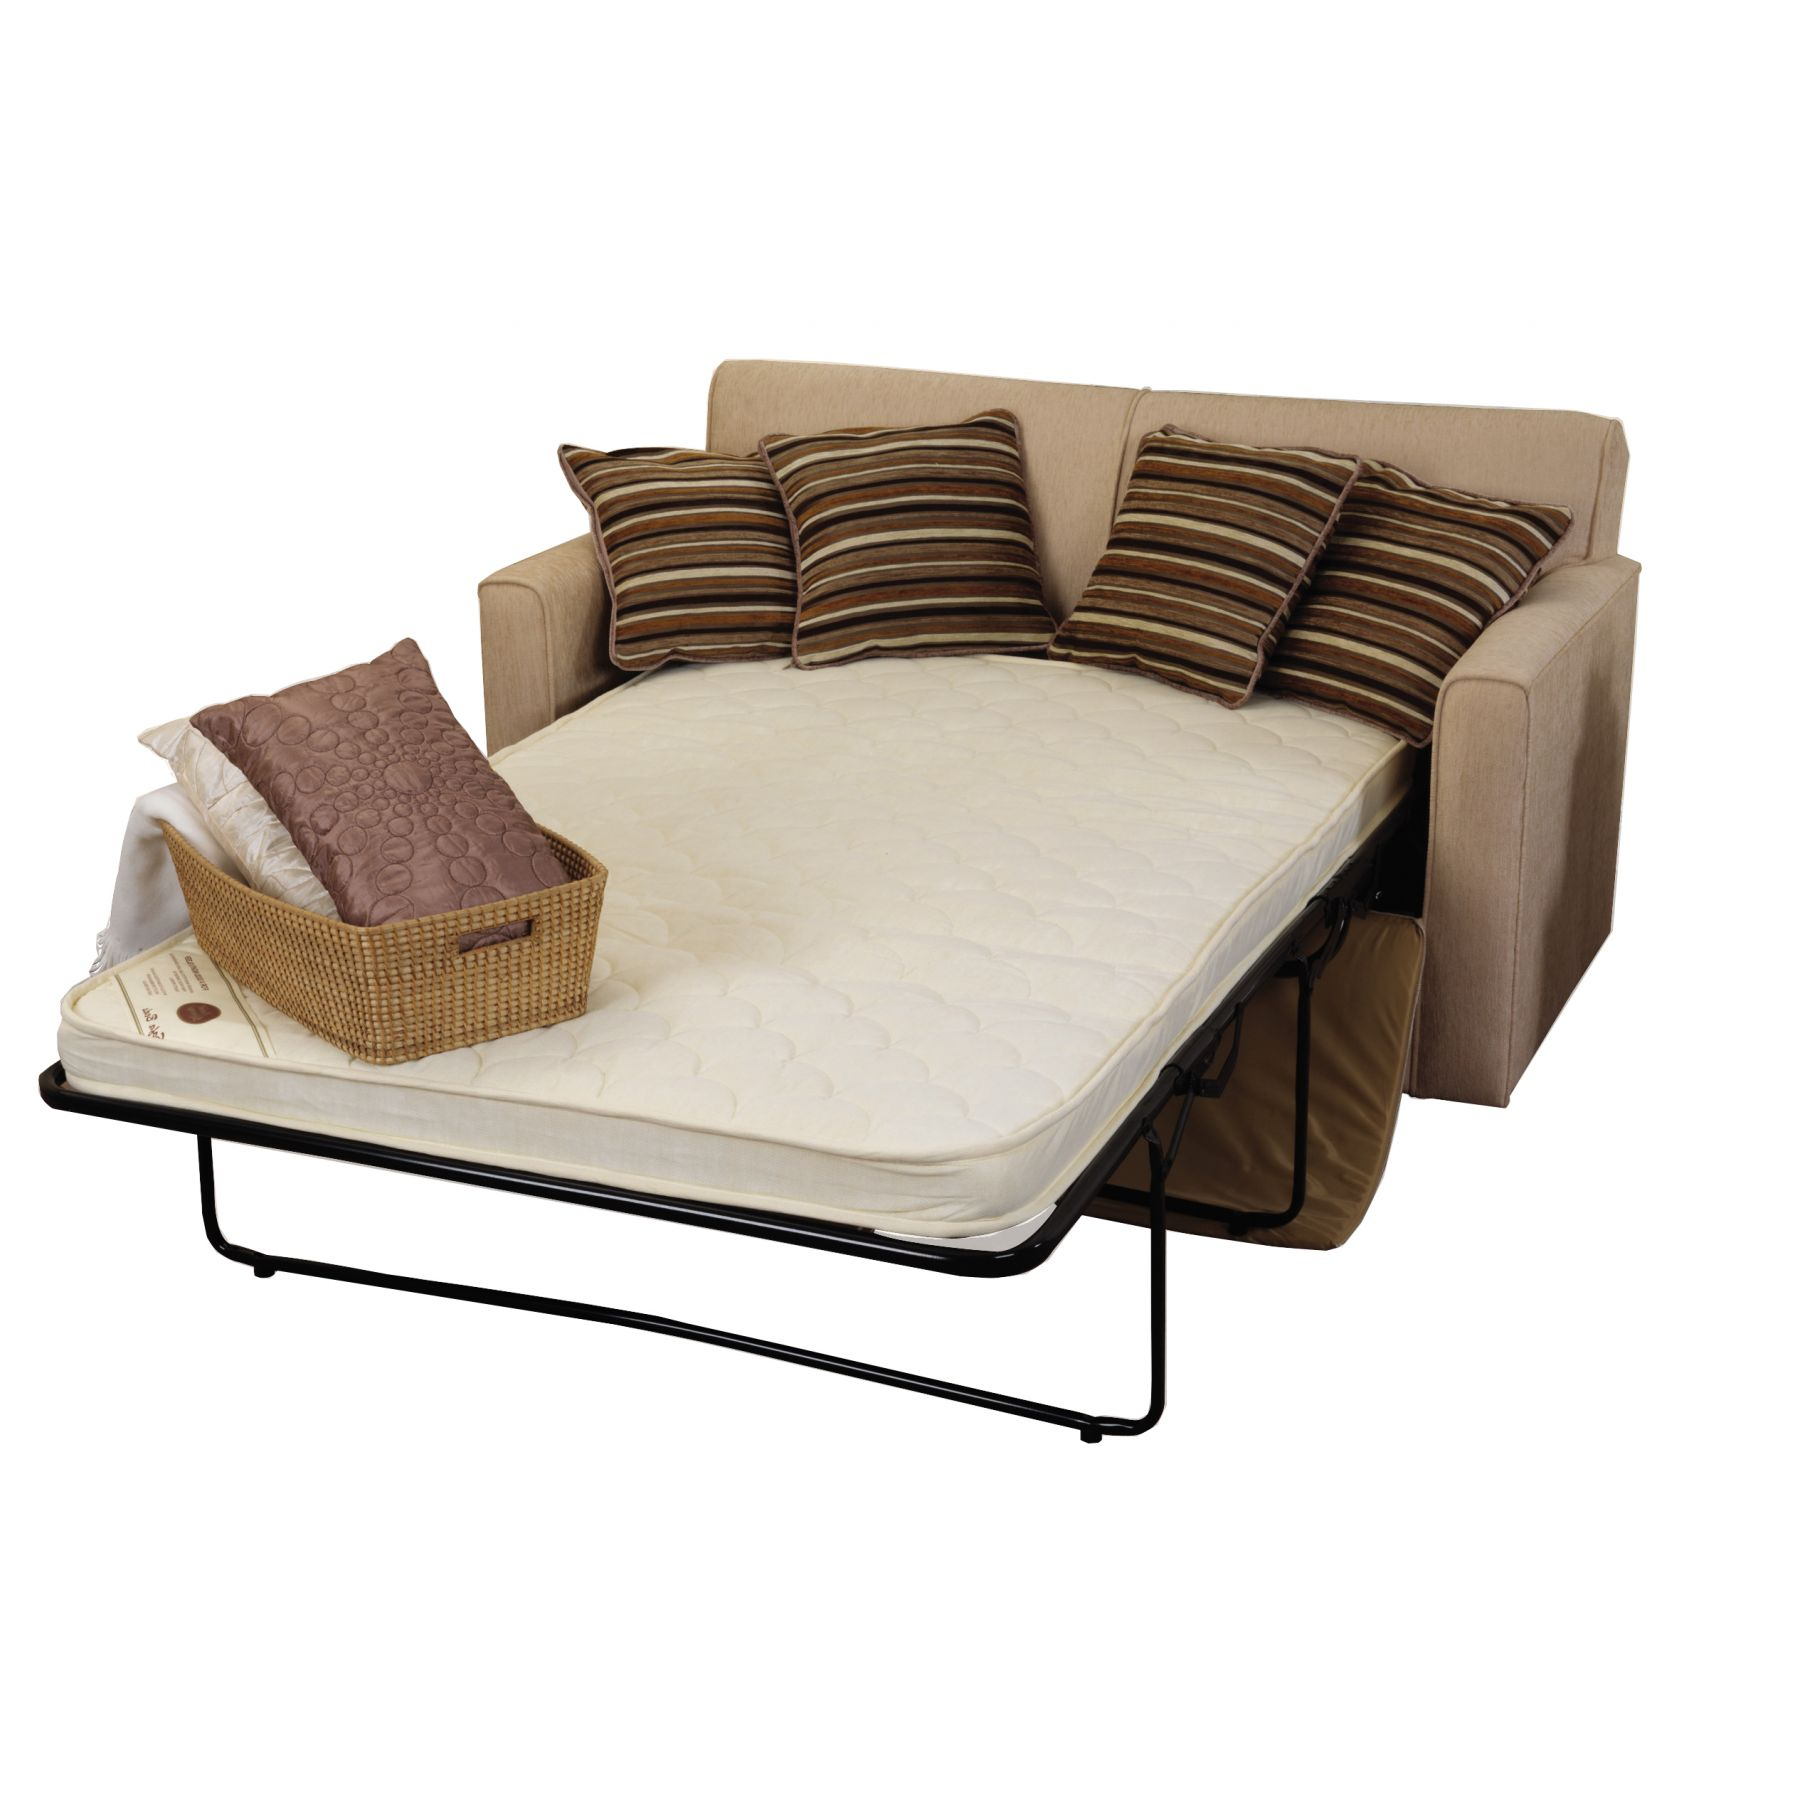 small double sofa bed 49 with small double sofa bed NGZNIOO